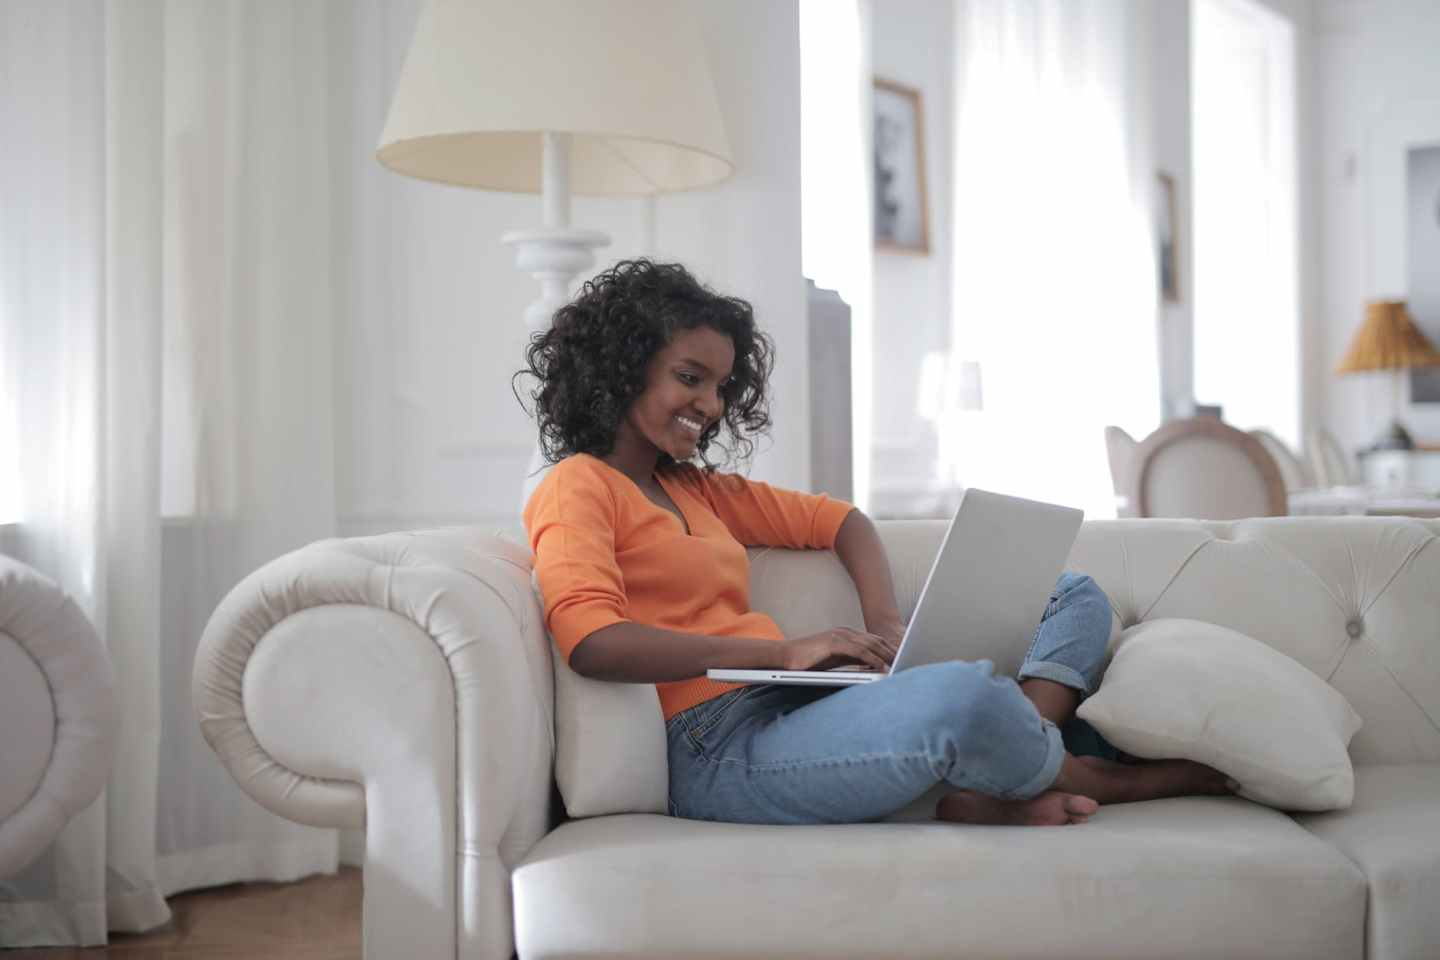 woman sitting on white couch using laptop computer - Representing working from home